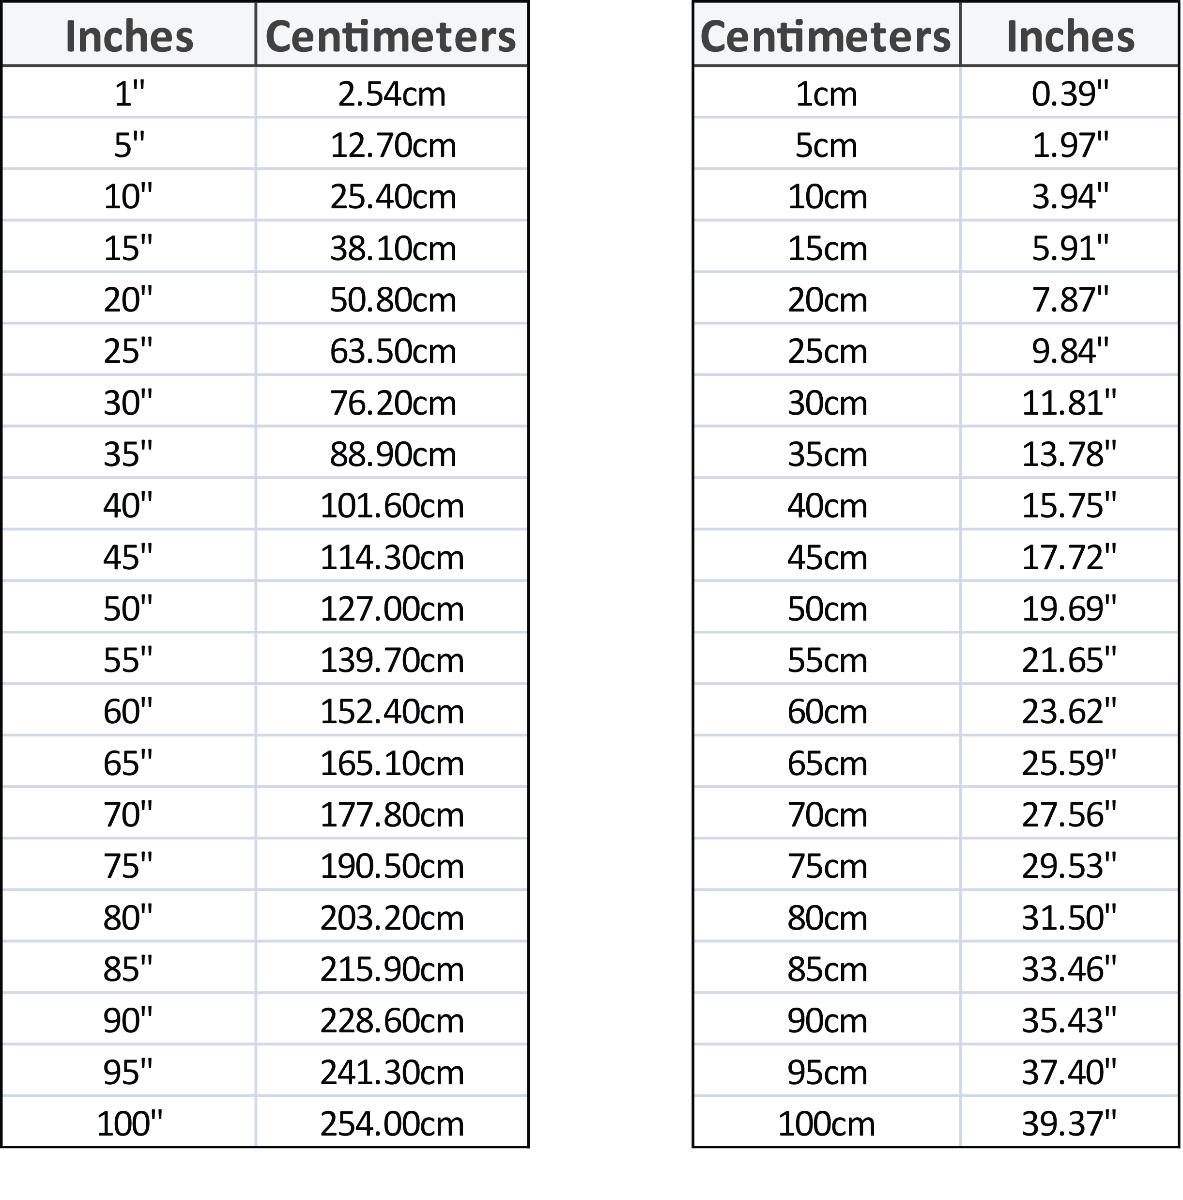 Conversion Charts Inch To Centimeter